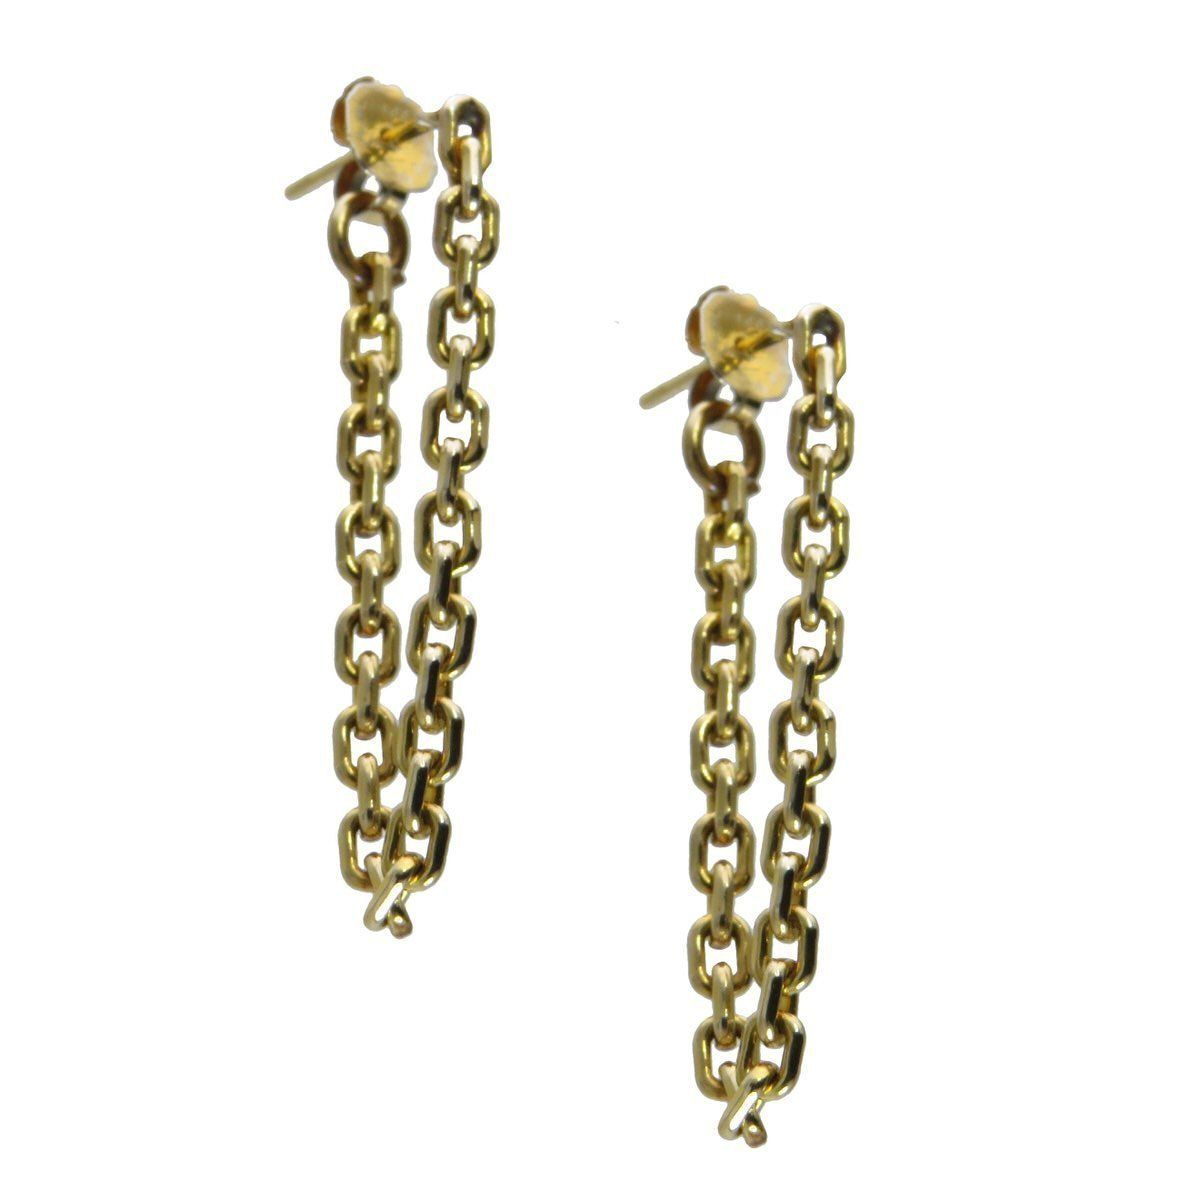 e3df88e7c 18k Gold Chain Wrap Drop Earrings, Vintage, 1930s to 1980s This gorgeous  pair of gold chain earrings, the chain circles the earlobe.